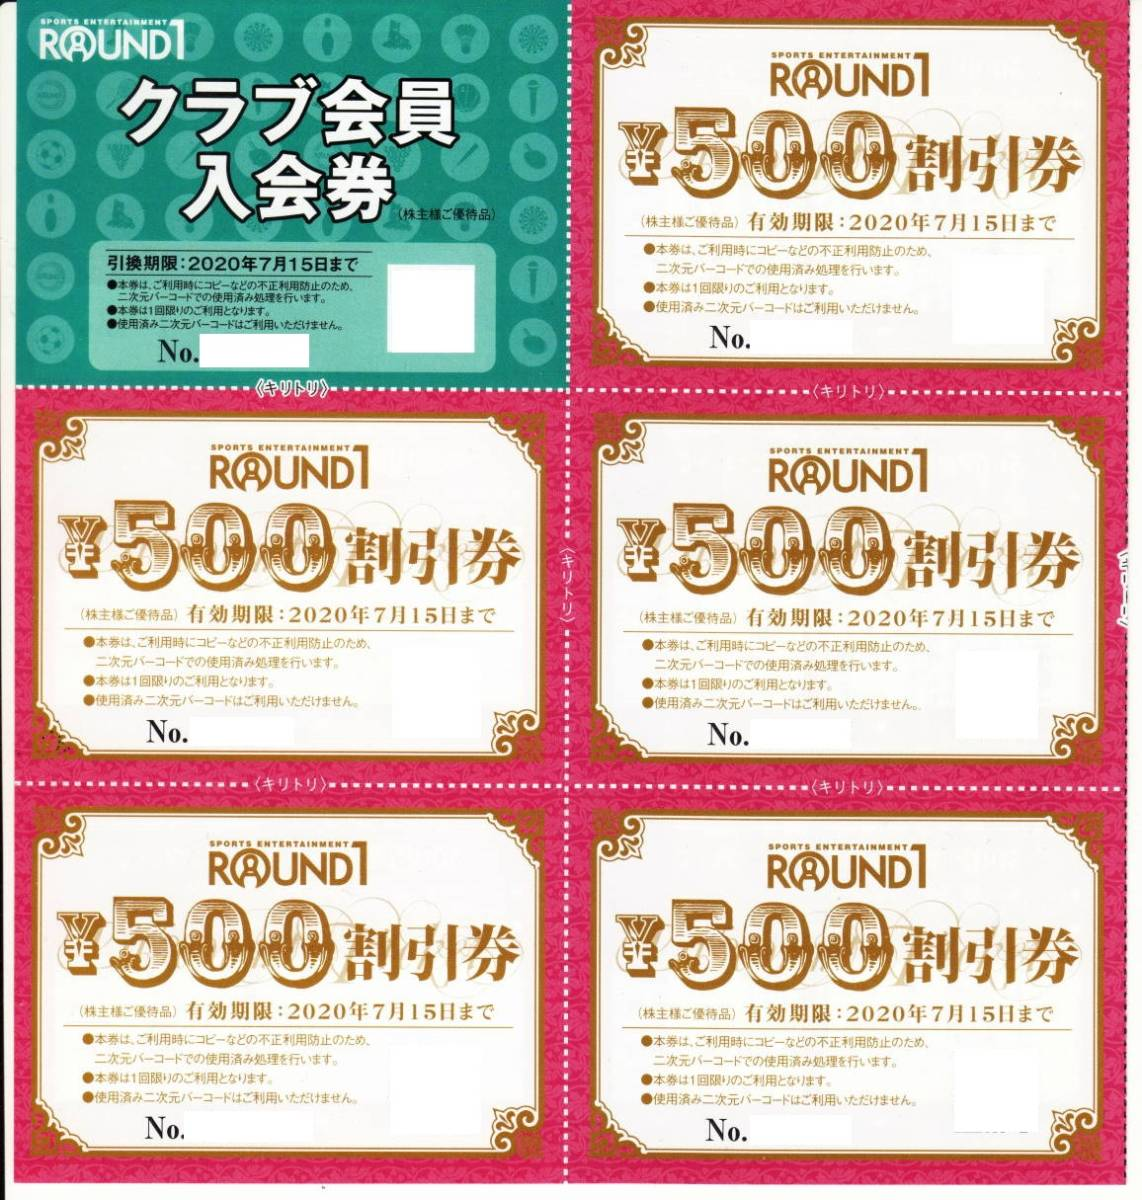 ROUND ONE shareholders discount ticket (500 yen × 5) such as the expiration date is extended